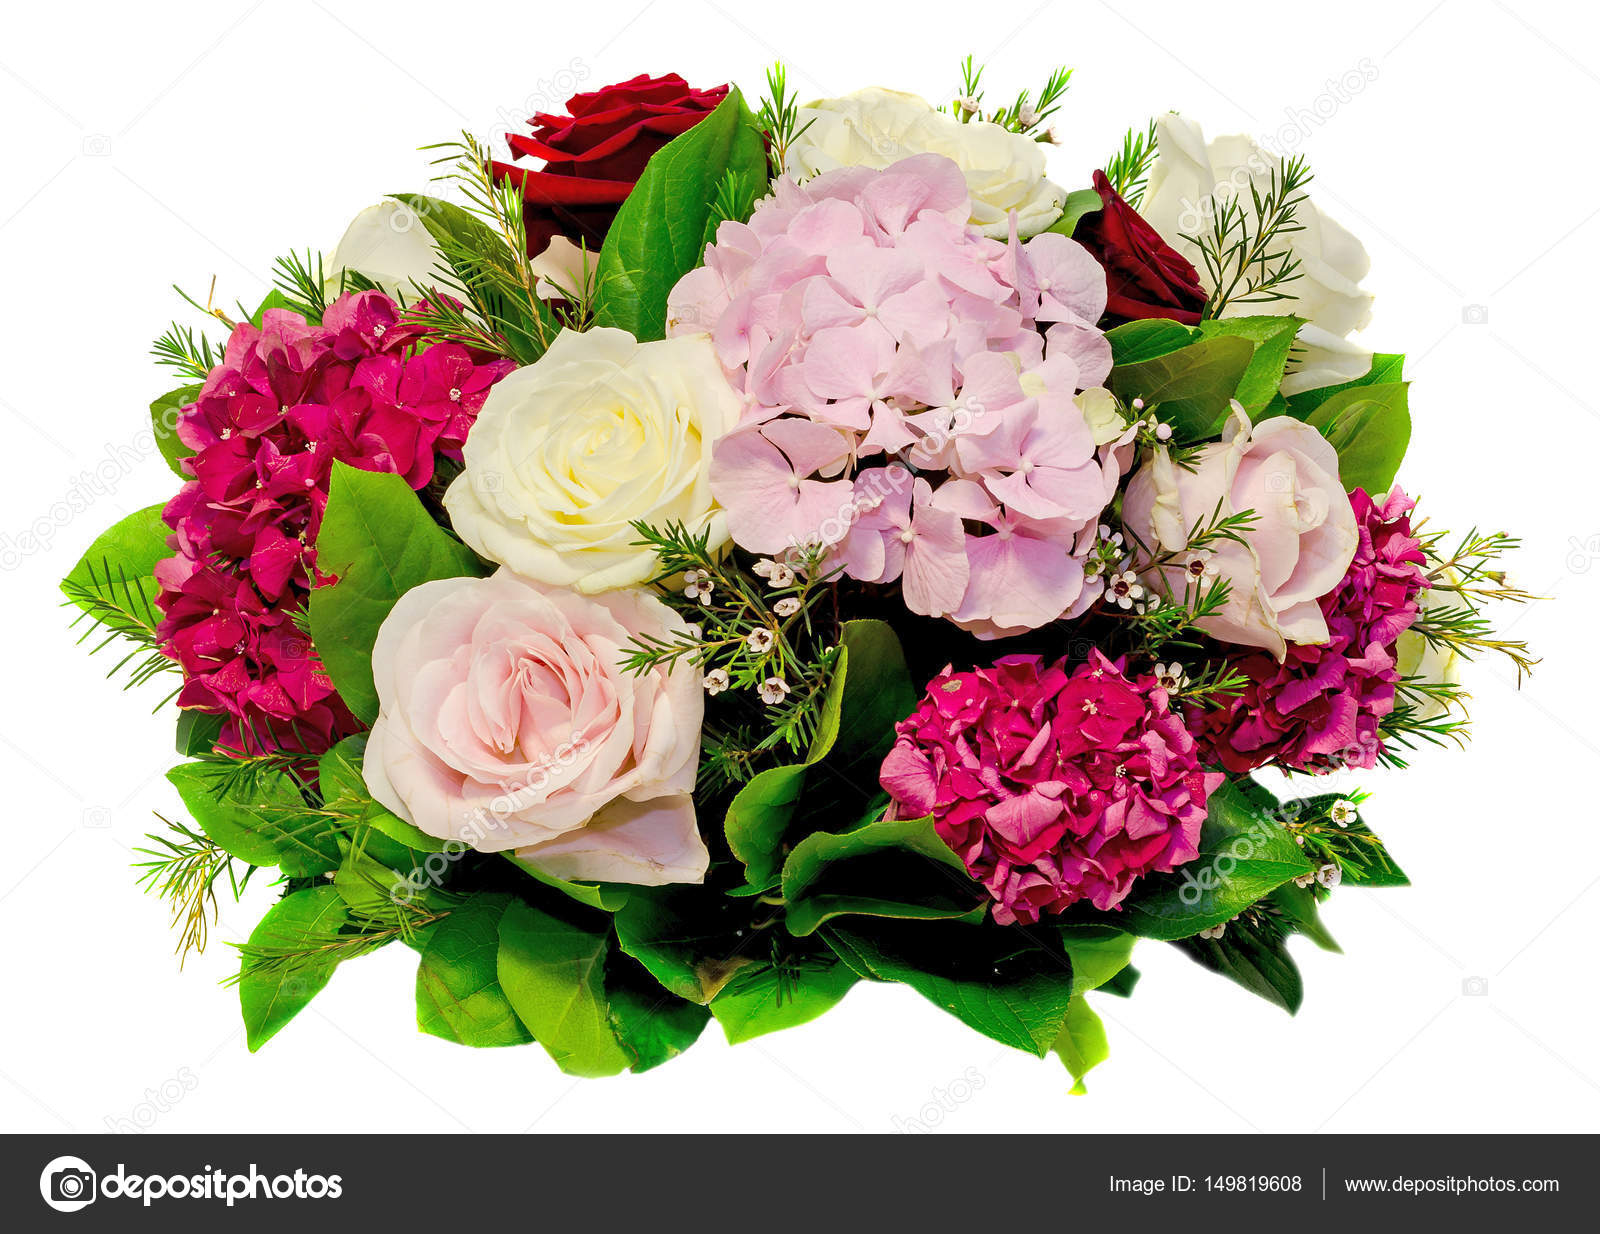 Floral Arrangement Bouquet With White Pink Yellow Roses And